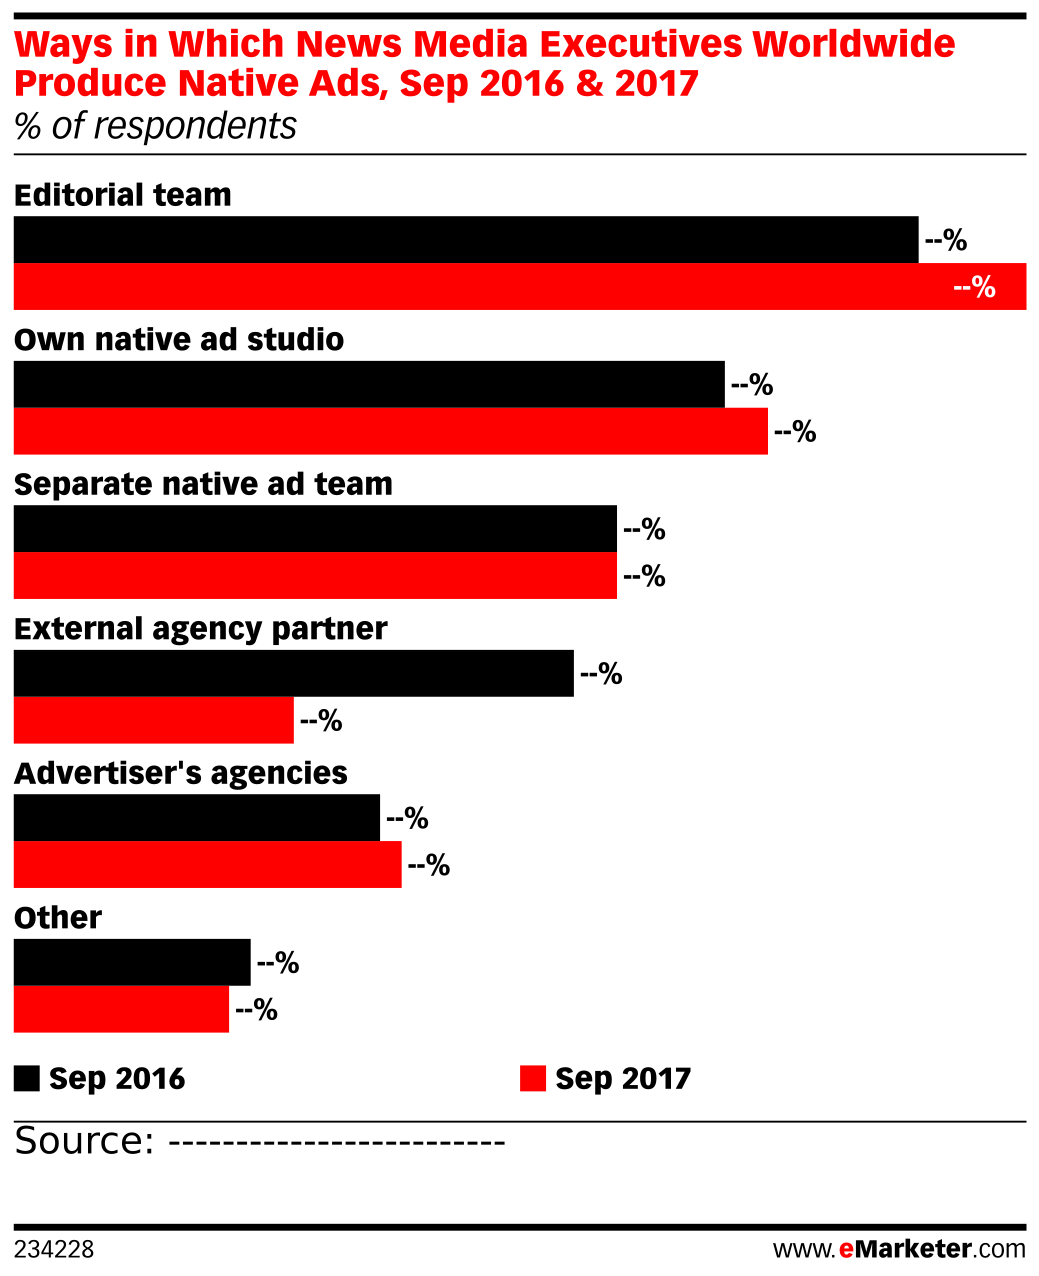 Ways in Which News Media Executives Worldwide Produce Native Ads, Sep 2016 & 2017 (% of respondents)